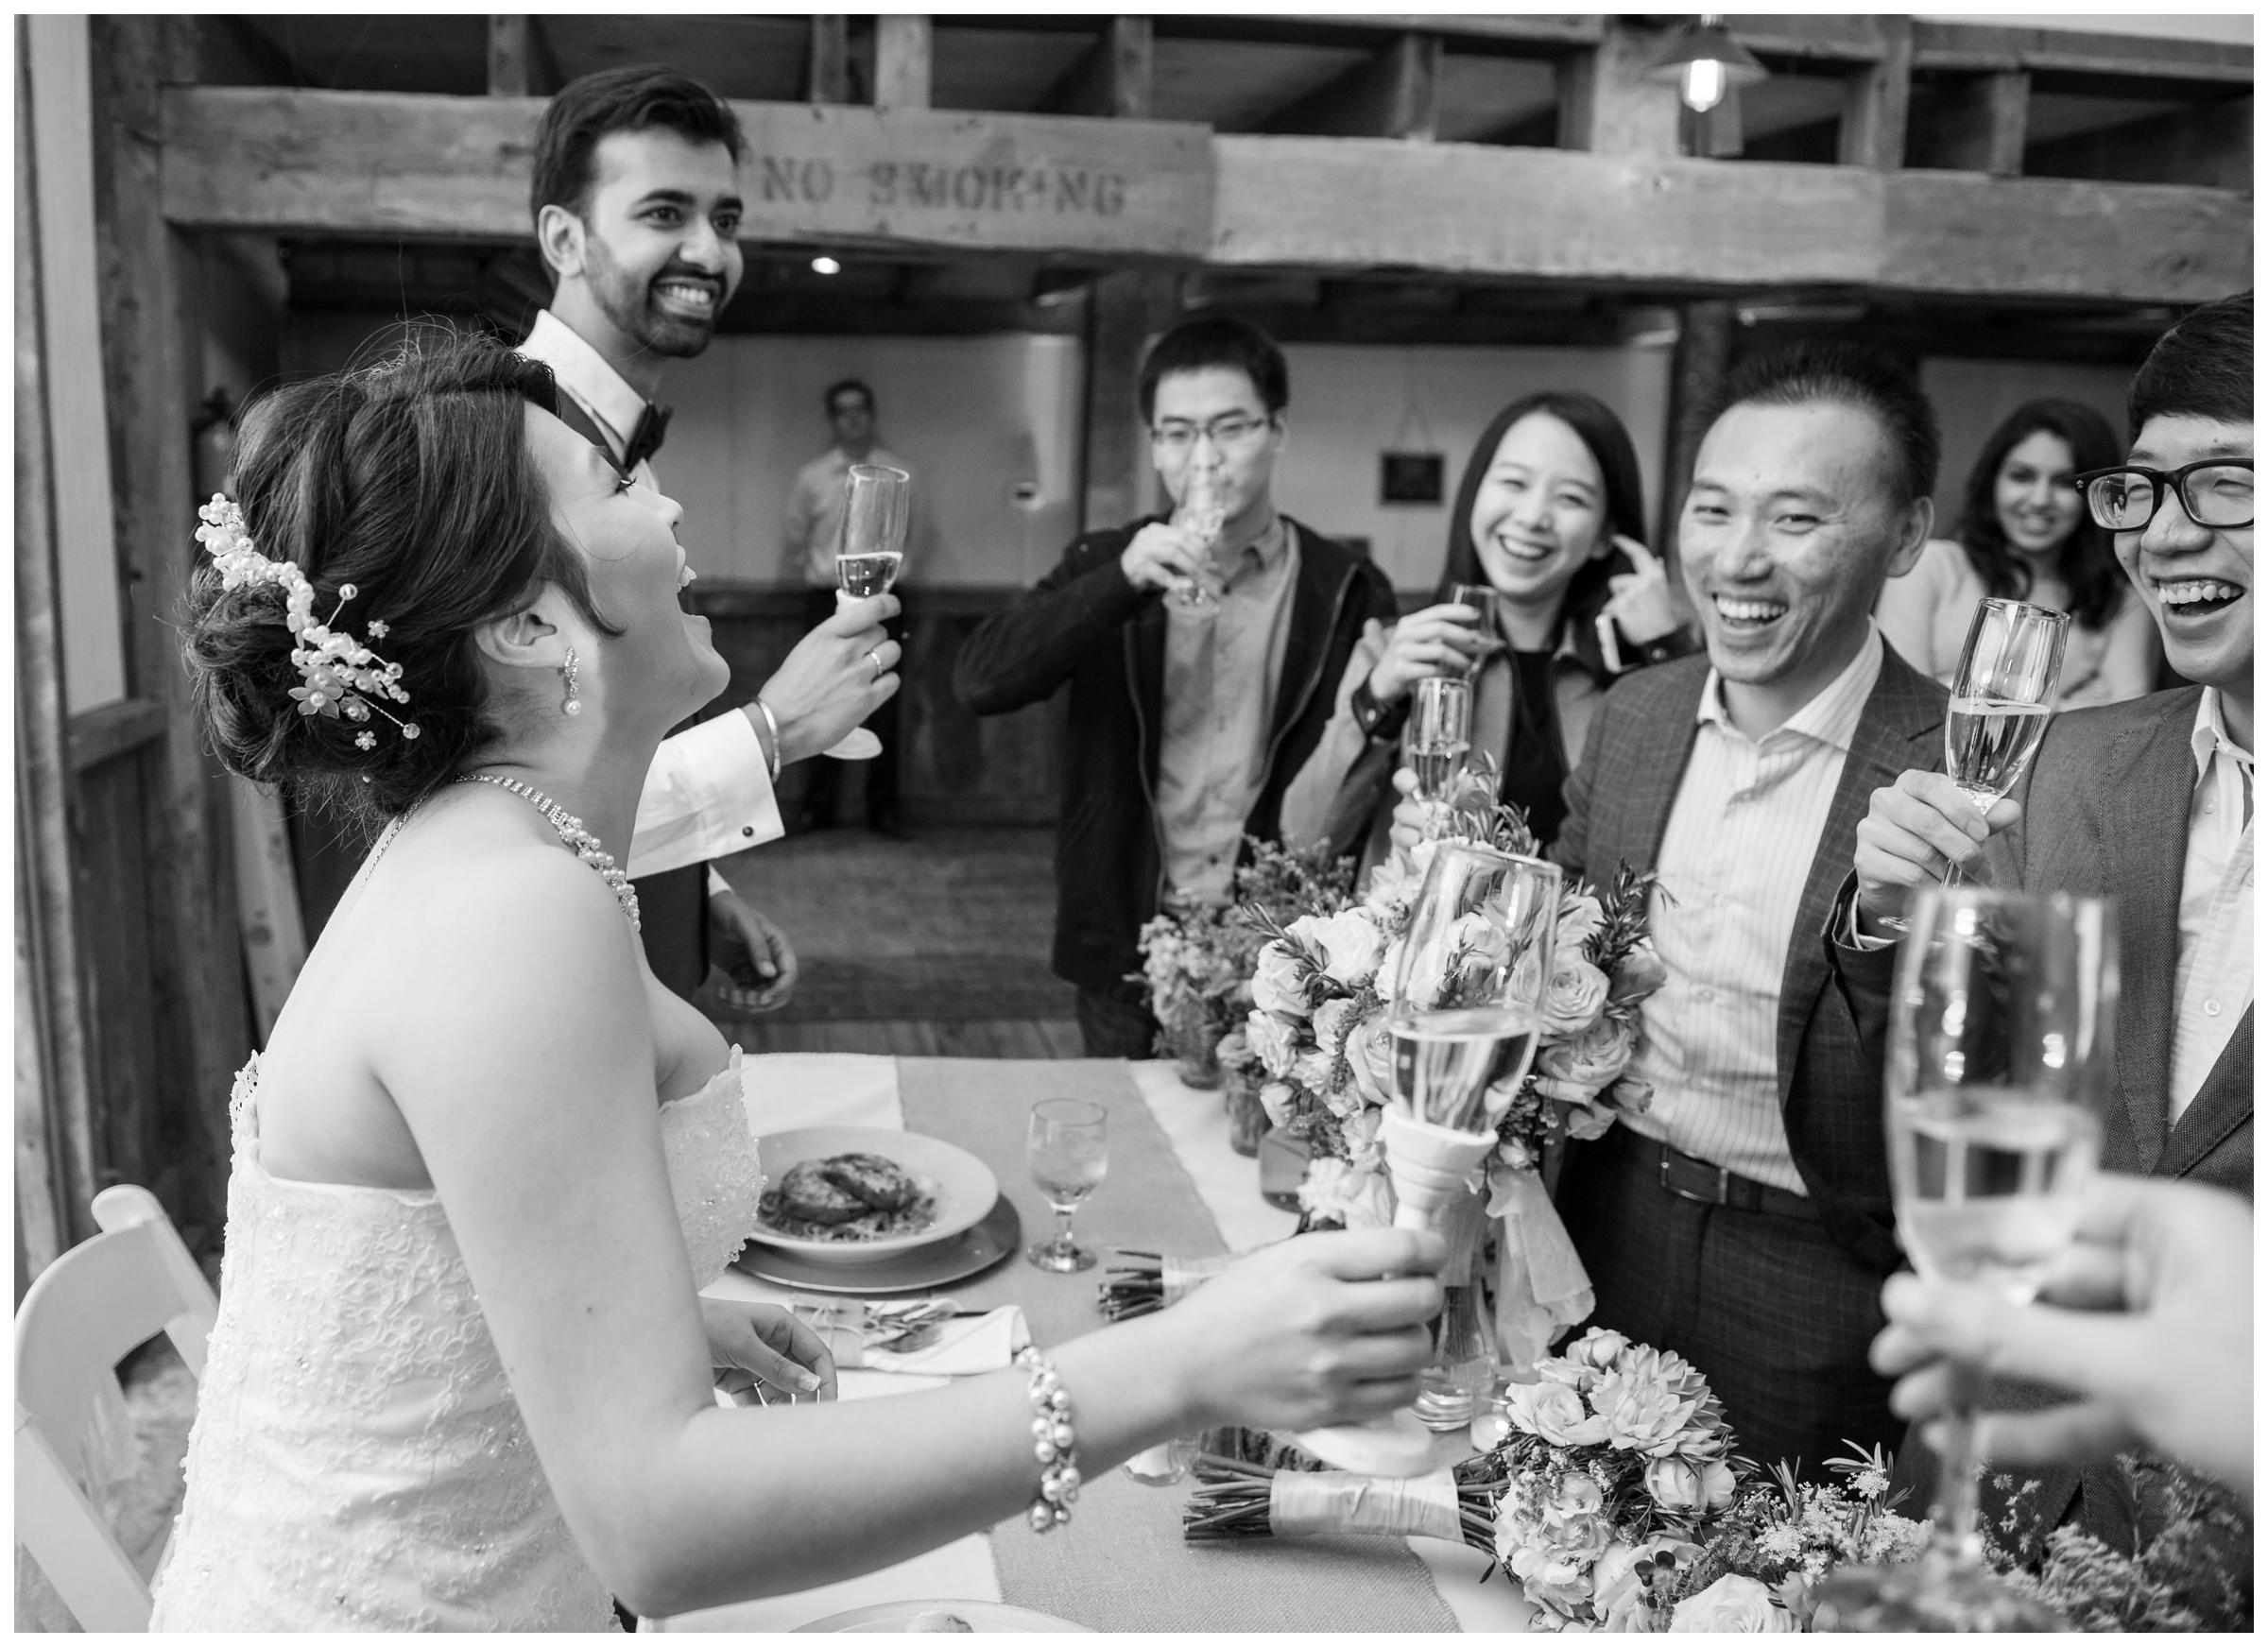 Newlyweds laugh with guests at rustic barn wedding.